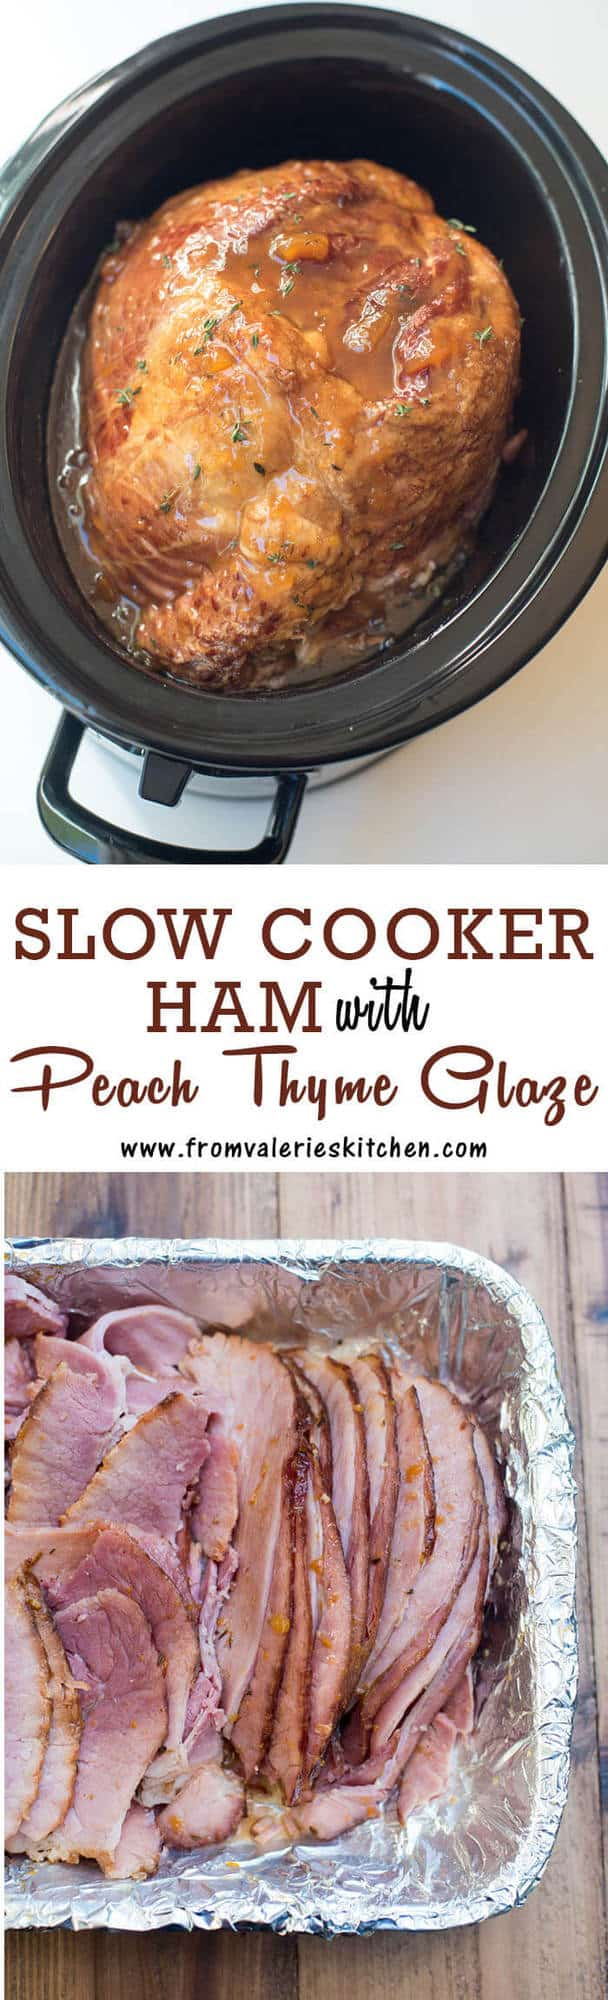 This Slow Cooker Ham with Peach Thyme Glaze cooks up incredibly tender with a sweet, tangy, smoky glaze. A great way to free up oven space on the holiday!